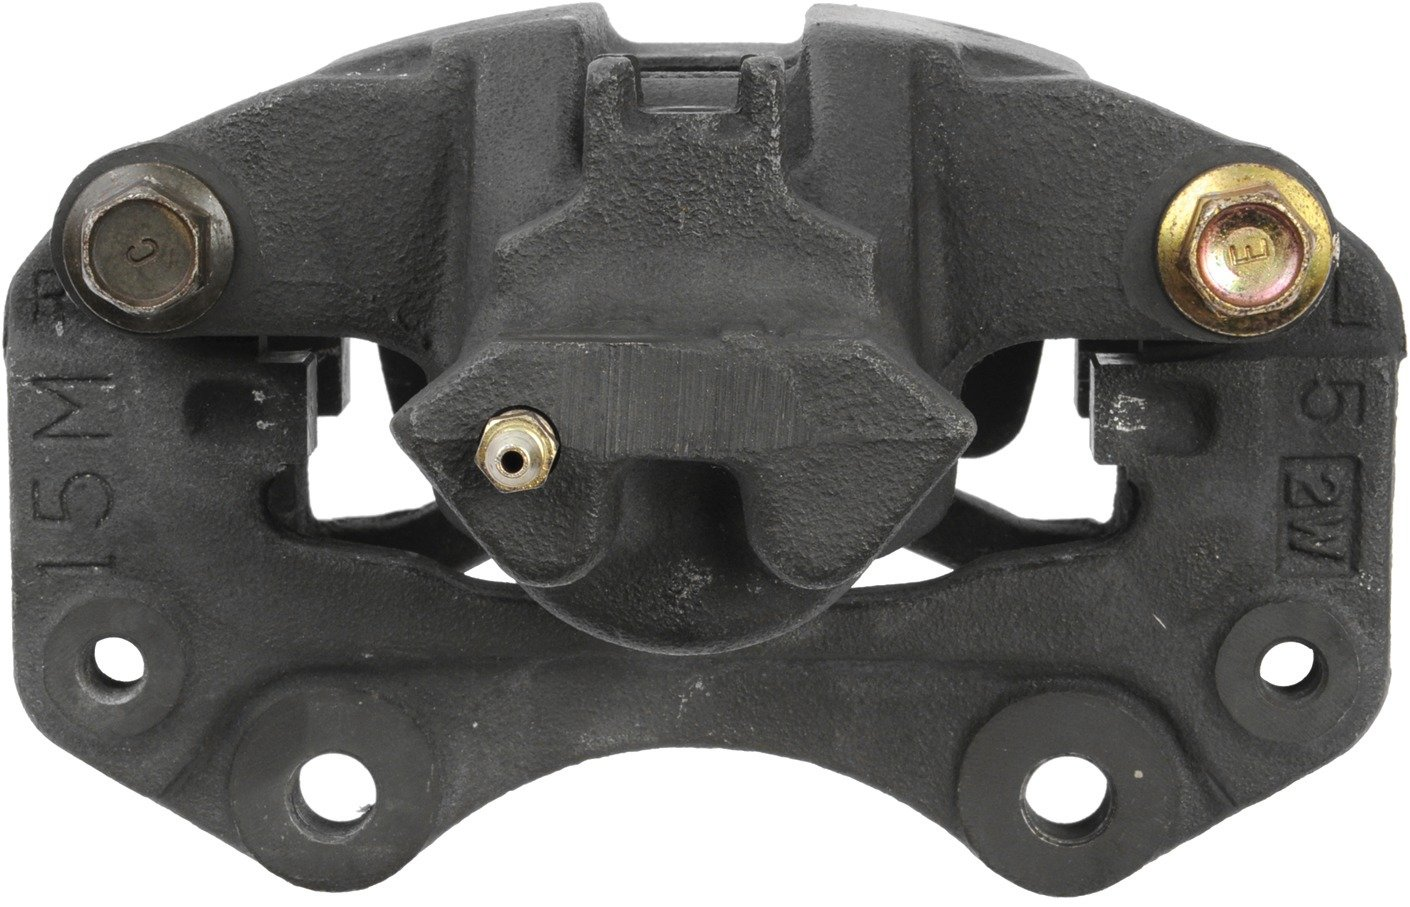 A1 Cardone 18-B8032 Unloaded Brake Caliper with Bracket (Remanufactured) by A1 Cardone